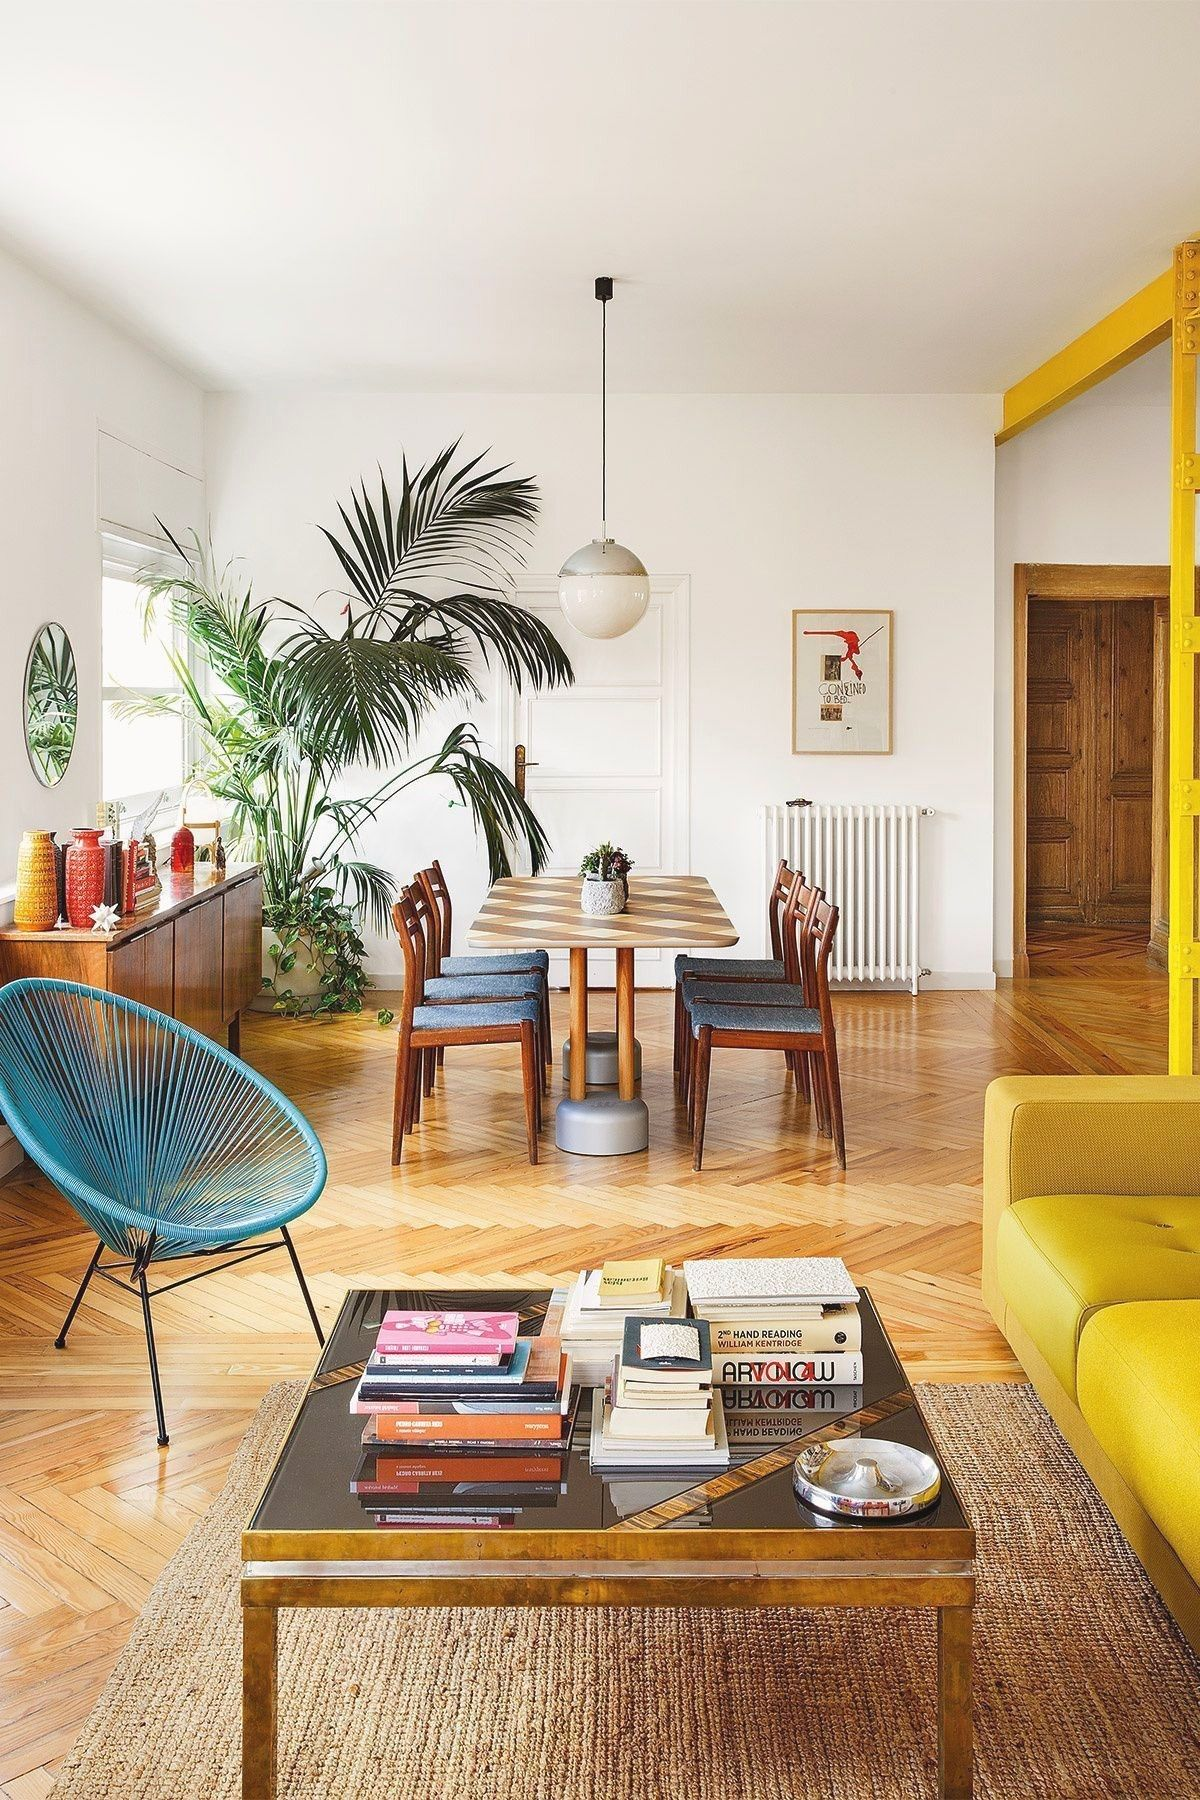 We Intended To Make The Room Feel Mid Century Modern Without Trying Too Hard I Believe Fre Apartment Interior Design Apartment Interior Home Interior Design